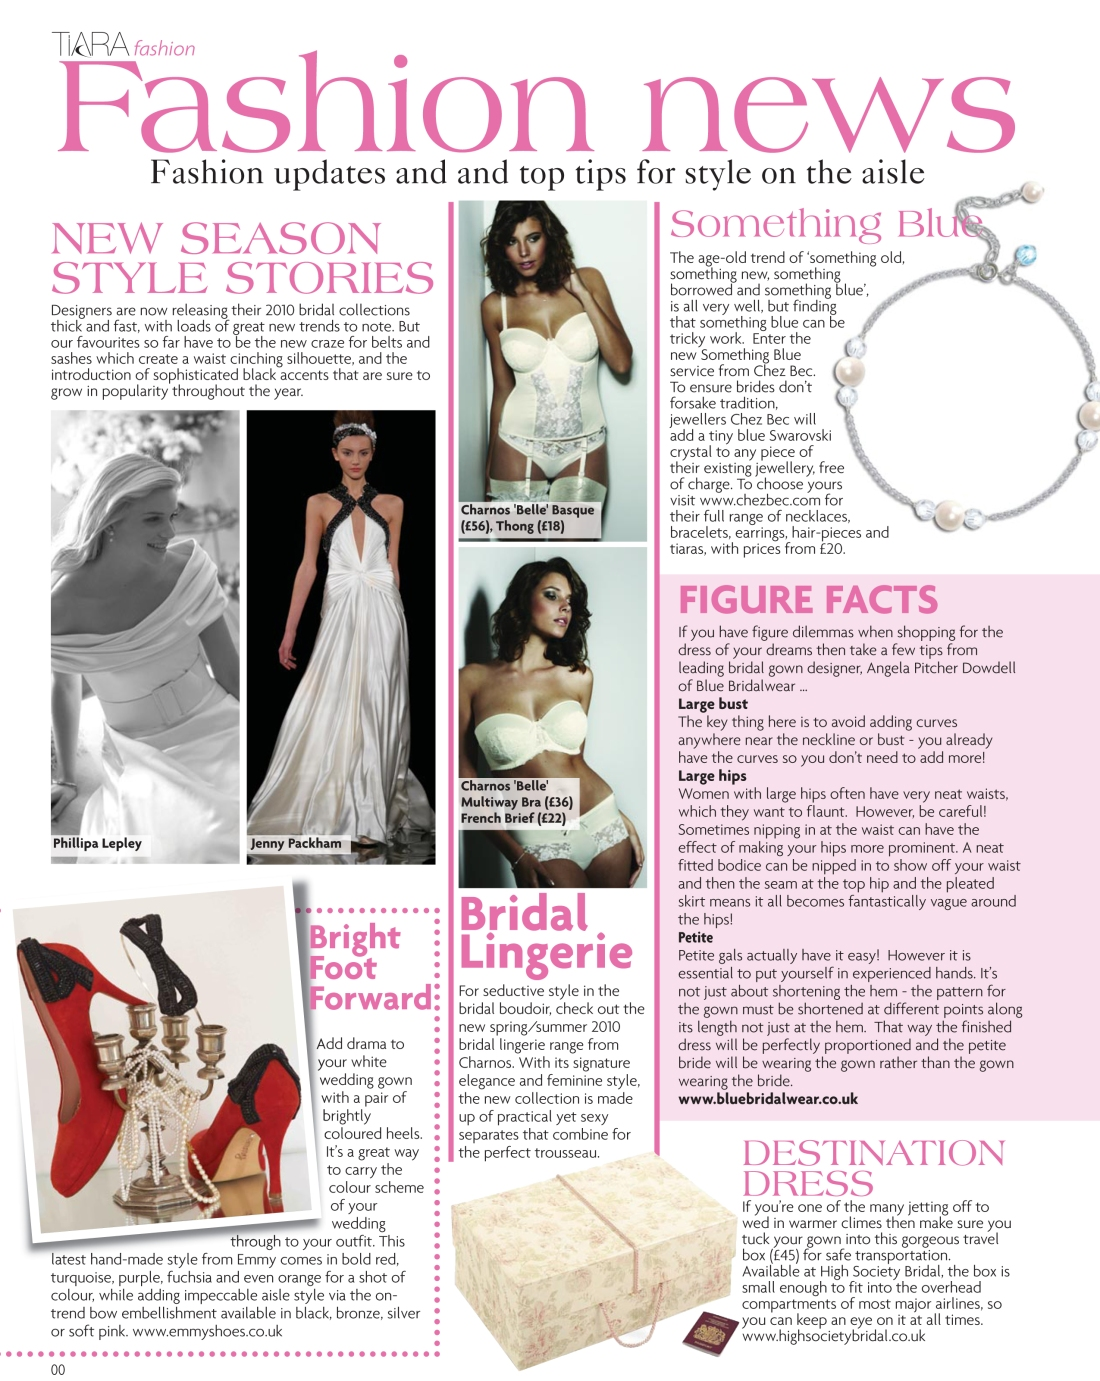 Bridal fashion news - Tiara Spring 2010 issue - Amy Lewis